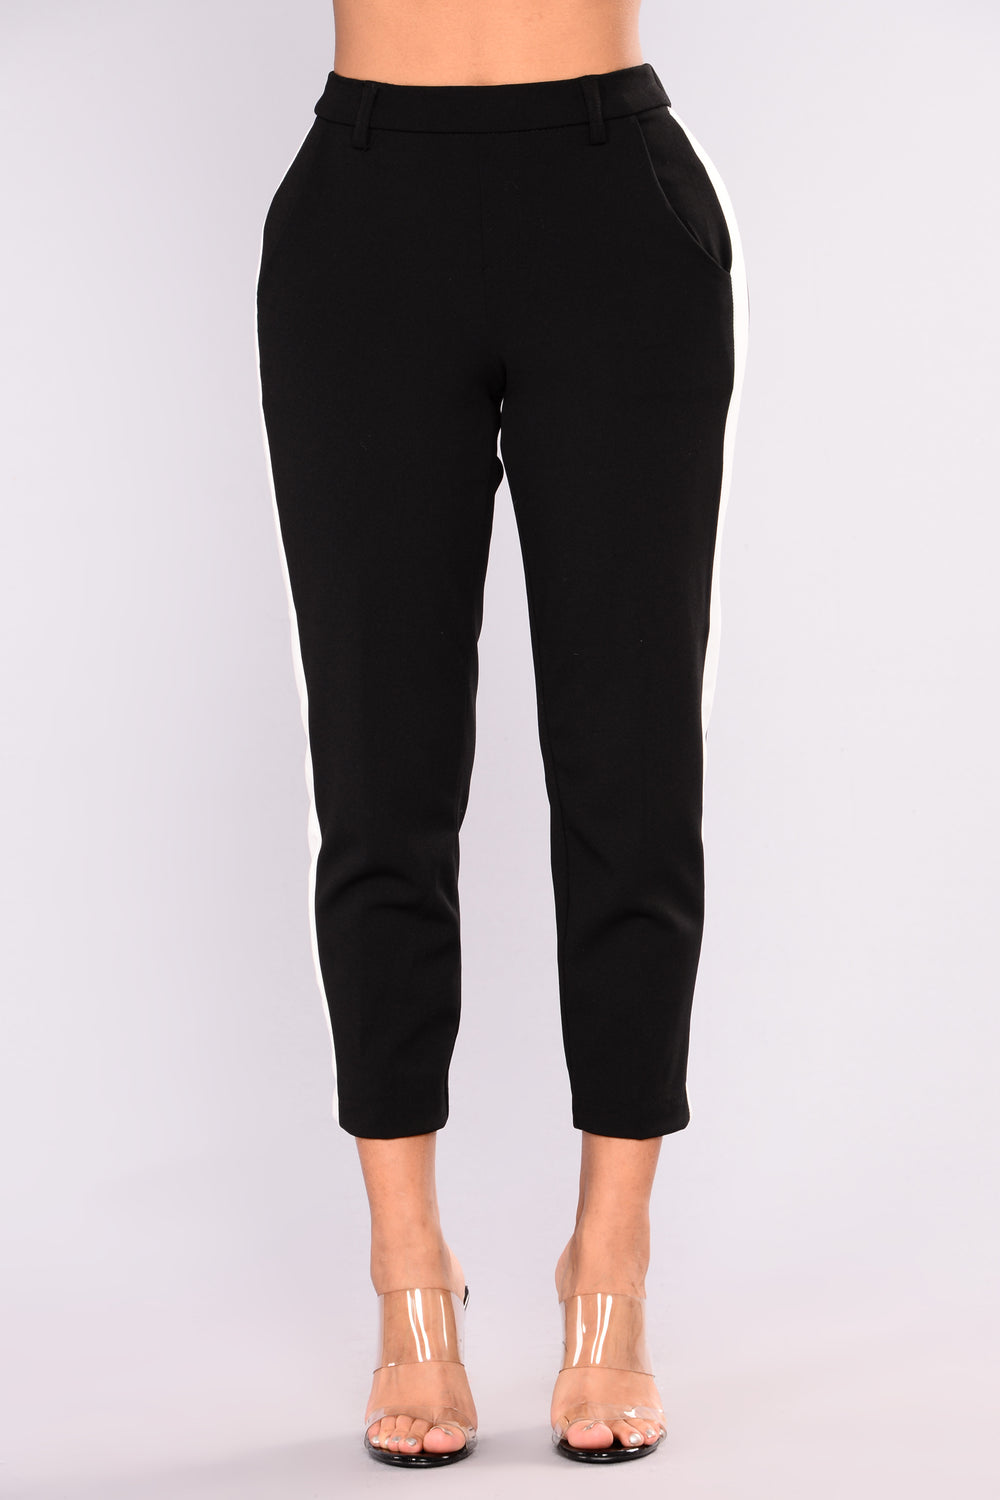 Adore You Side Stripe Pants - Black/White